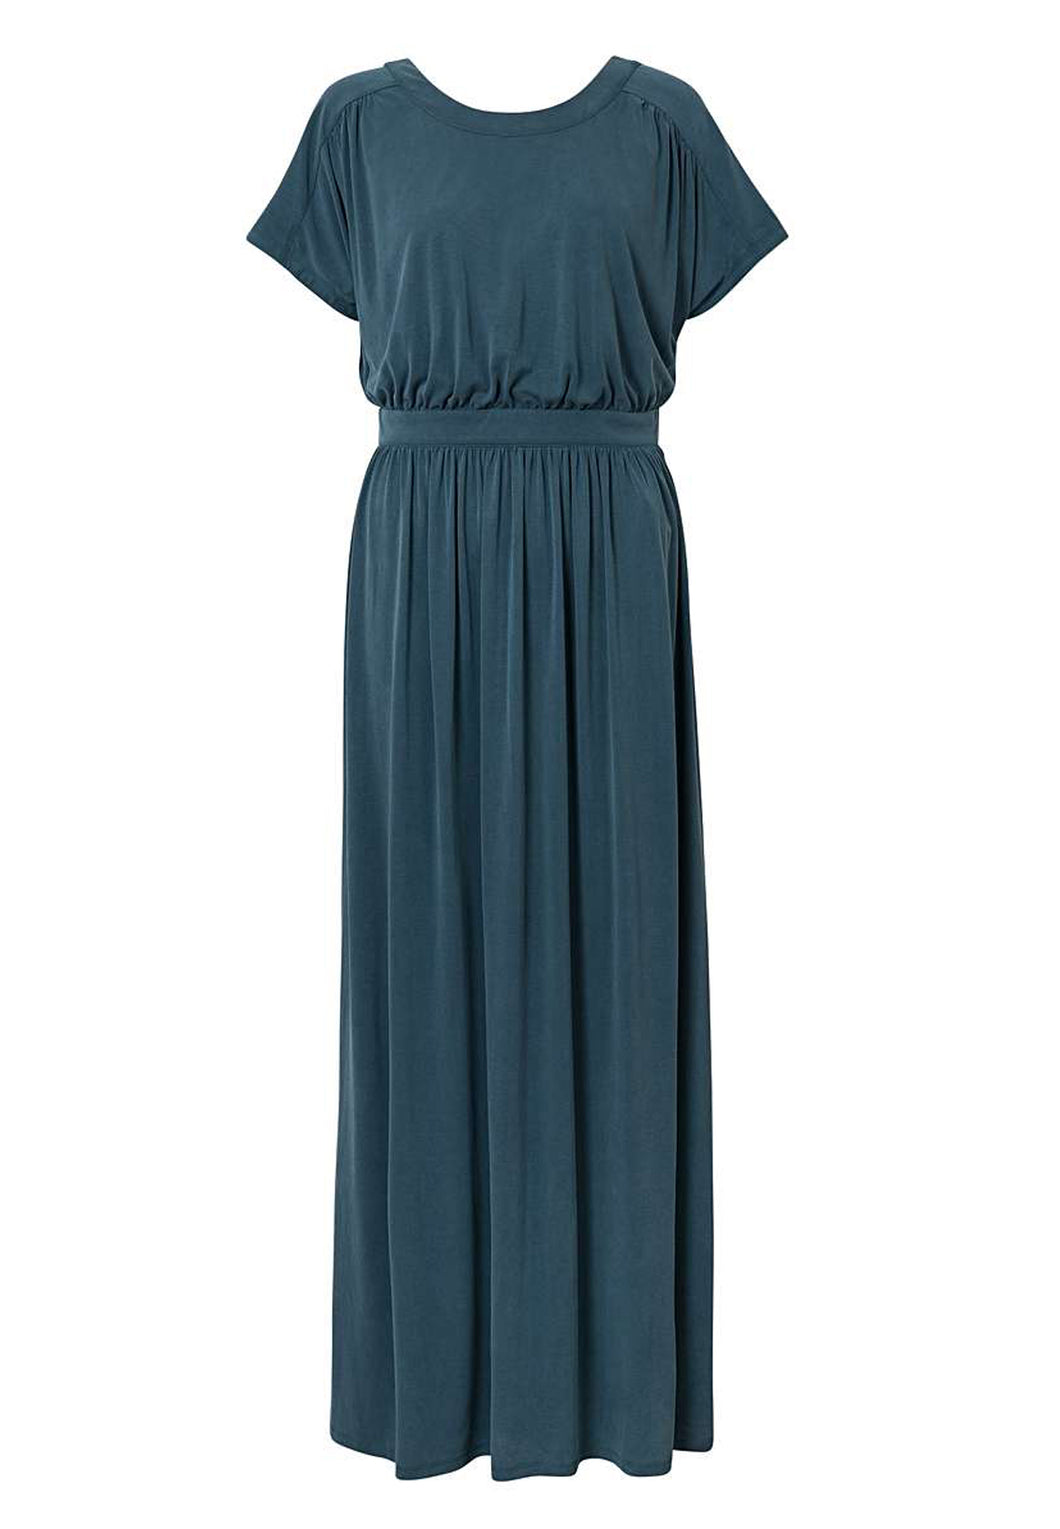 Ex Oliver Bonas Hathi Maxi Occasion Dress